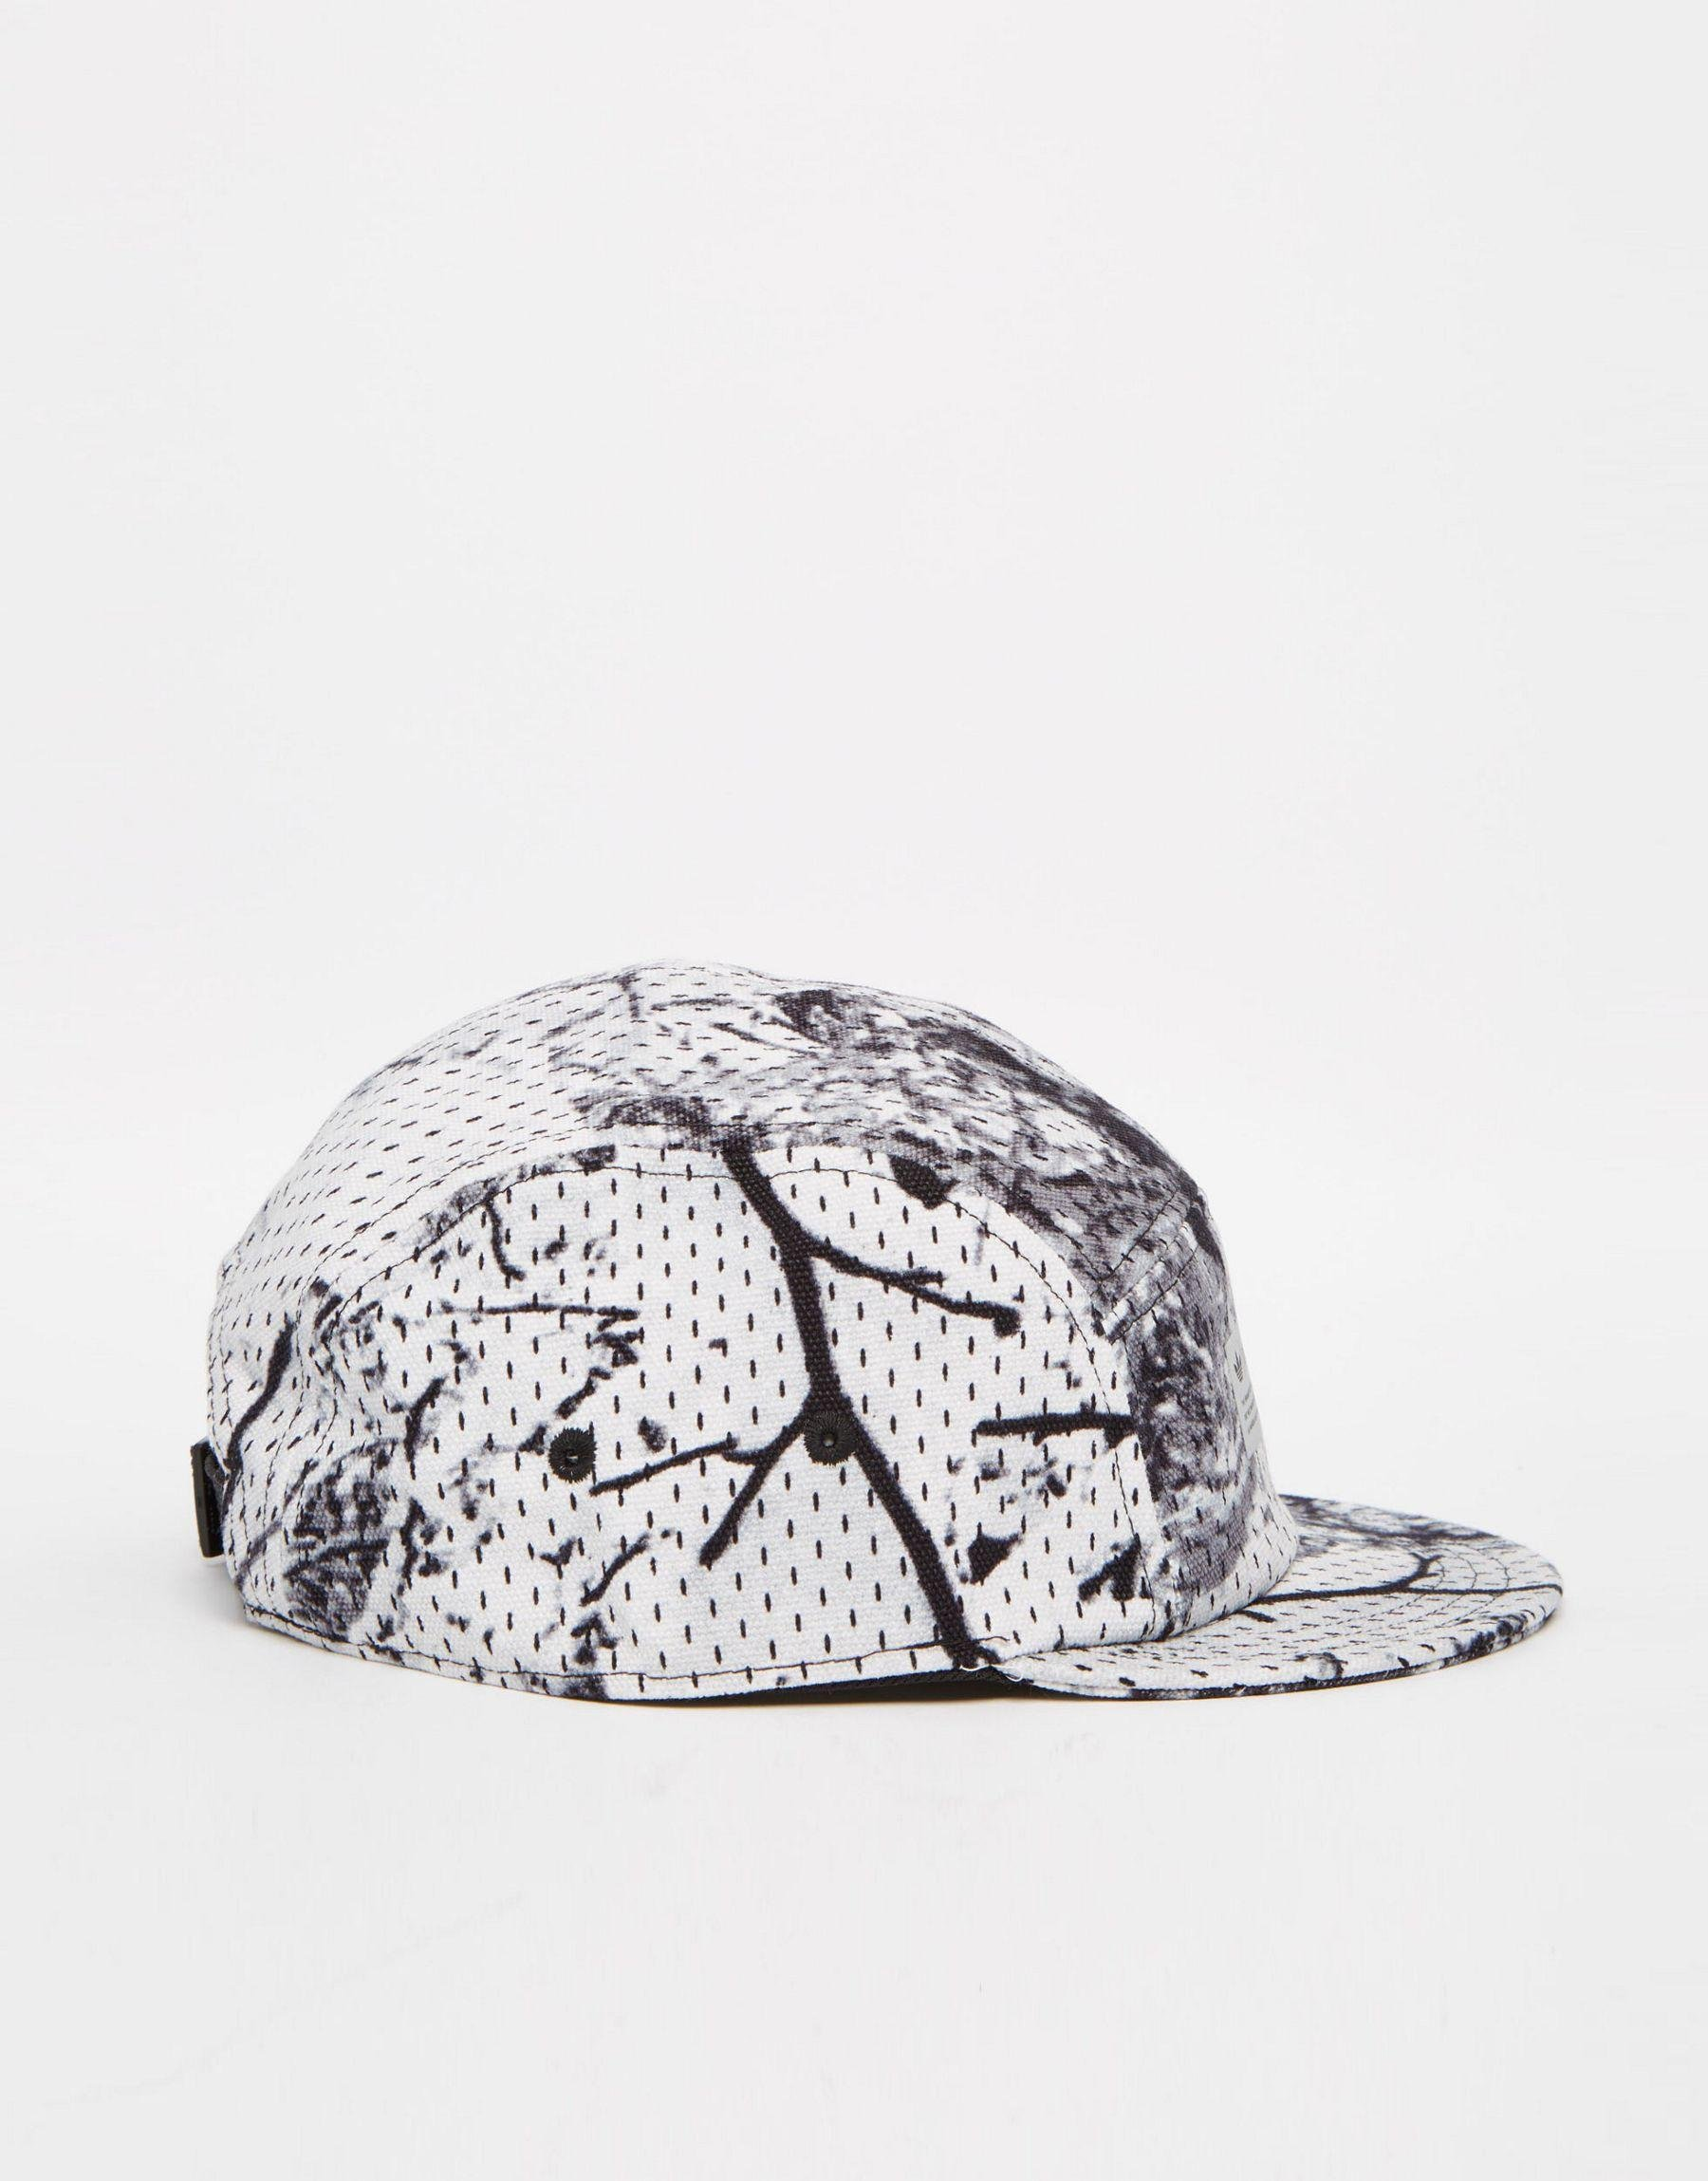 Lyst - adidas Originals Didas Snow Camo Cyclori Cap in Black for Men eaa68cd1713e